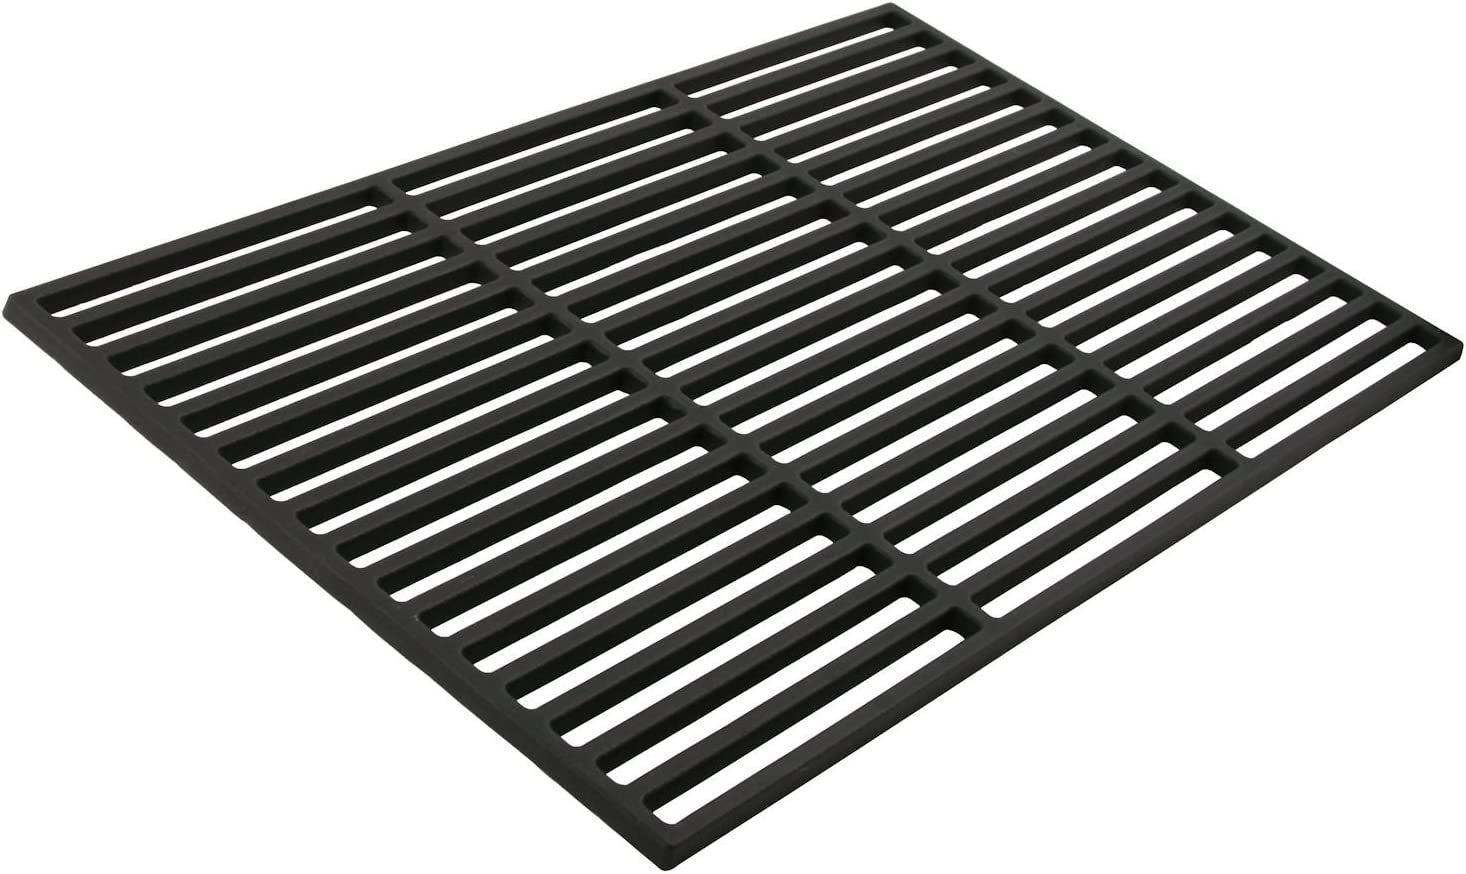 Solid Cast Iron Enamel Various Sizes Available for/Charcoal Gas Grill and More